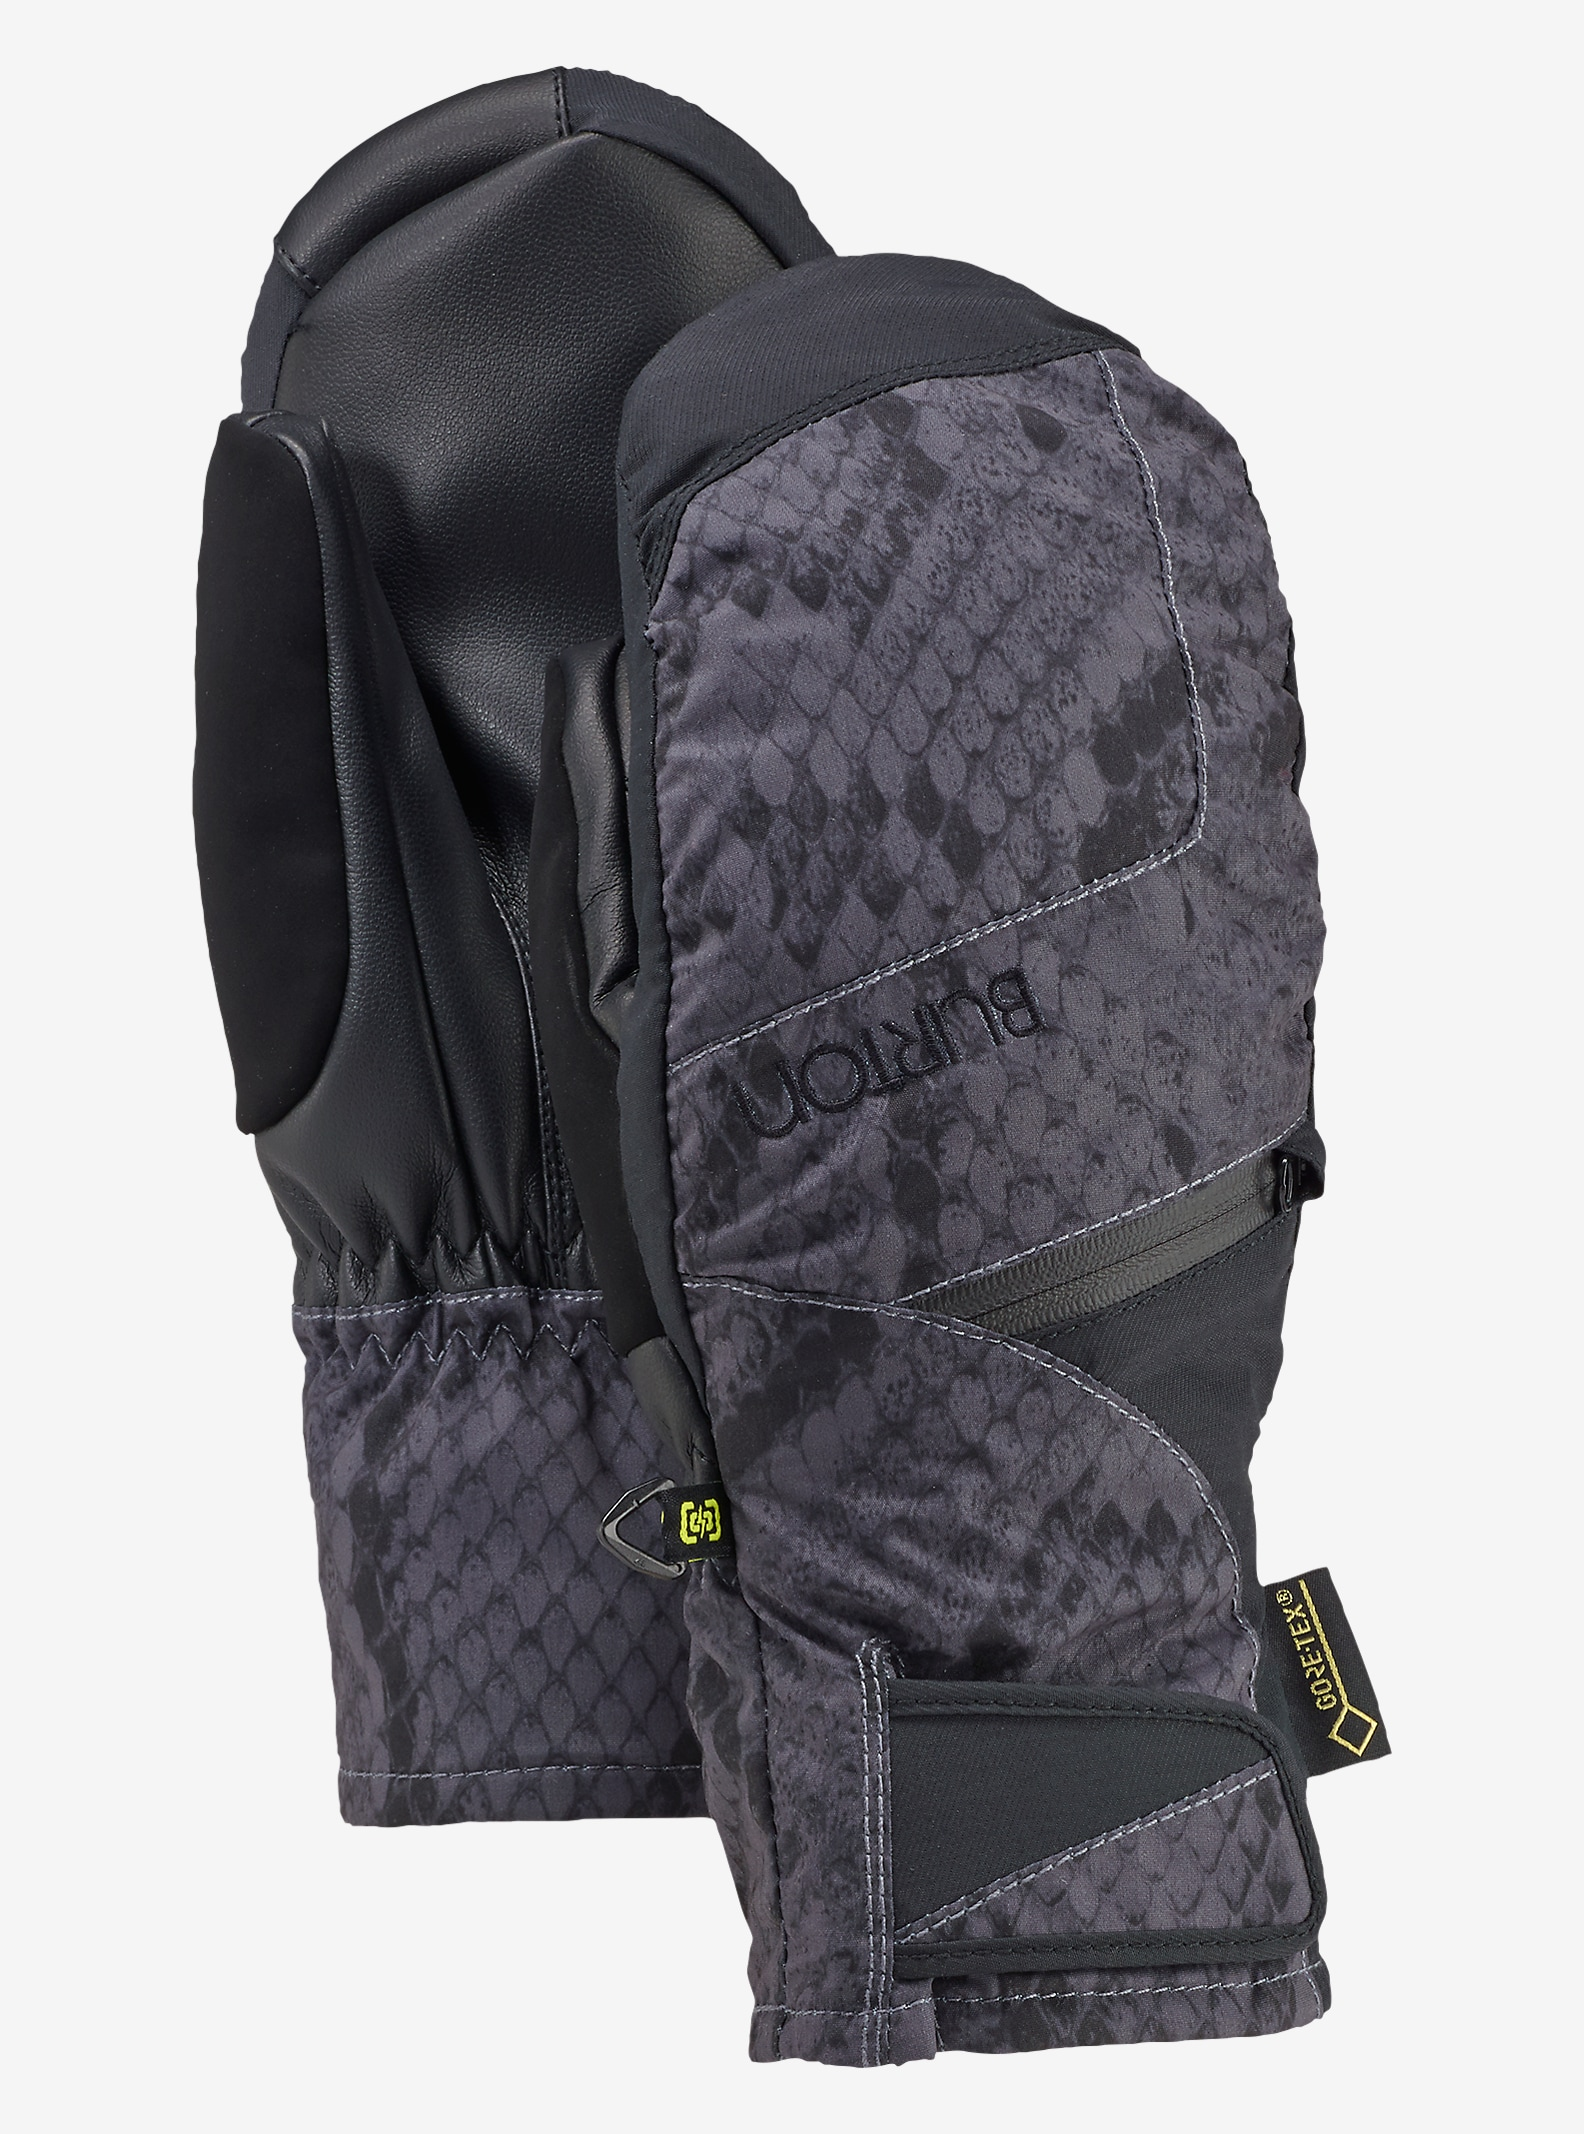 Burton Women's GORE-TEX® Under Mitt + Gore warm technology shown in Python / True Black